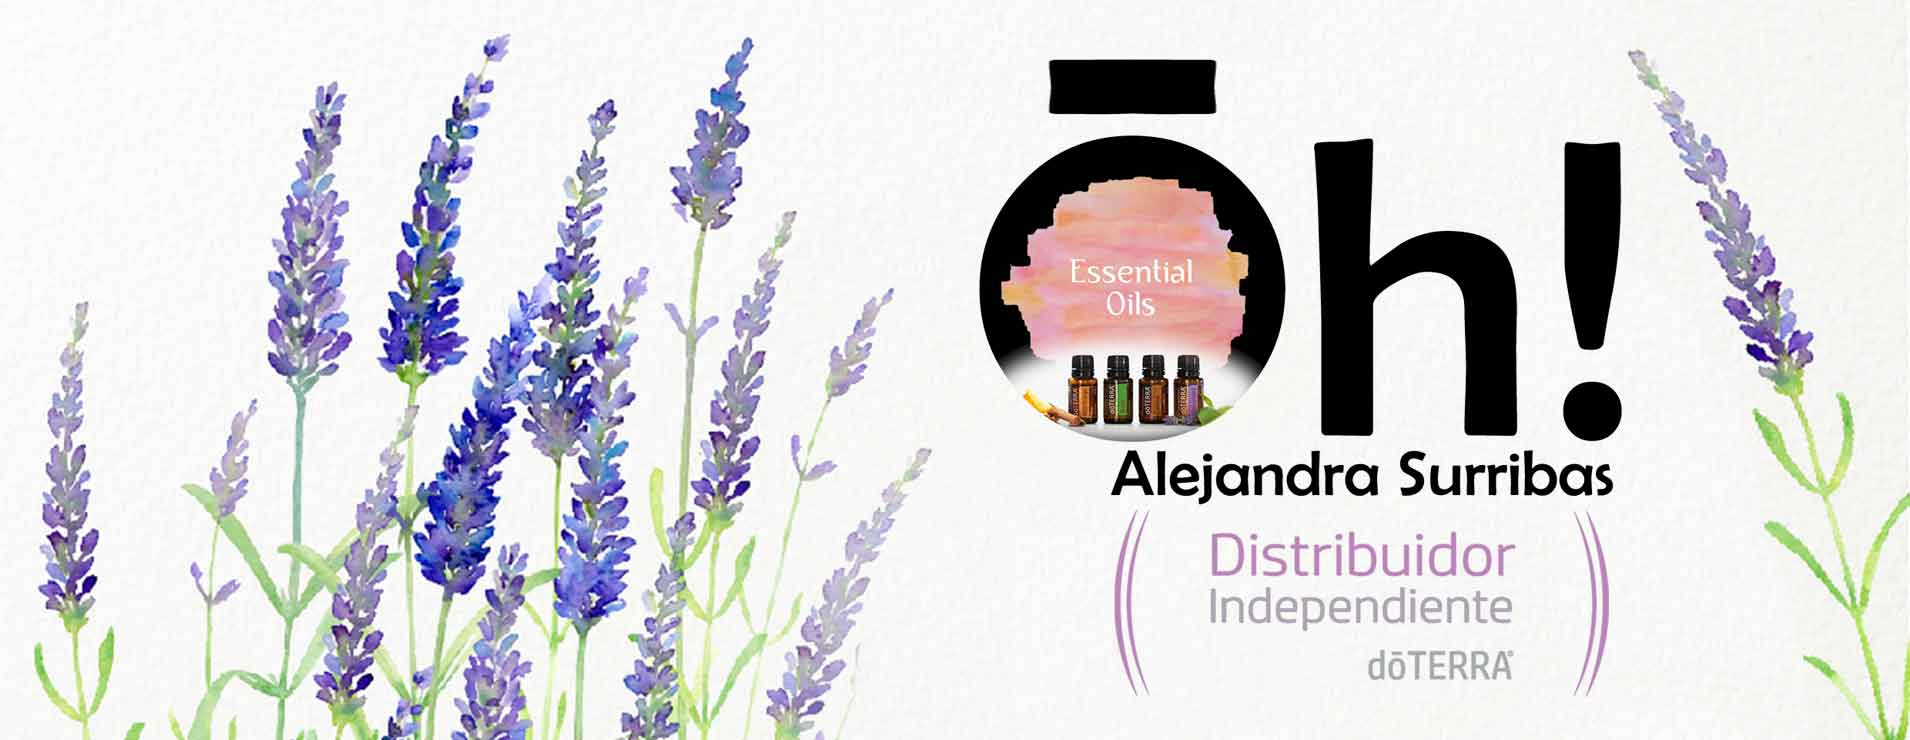 Alejandra-Surribas-Doterra-Distribuidor-independiente